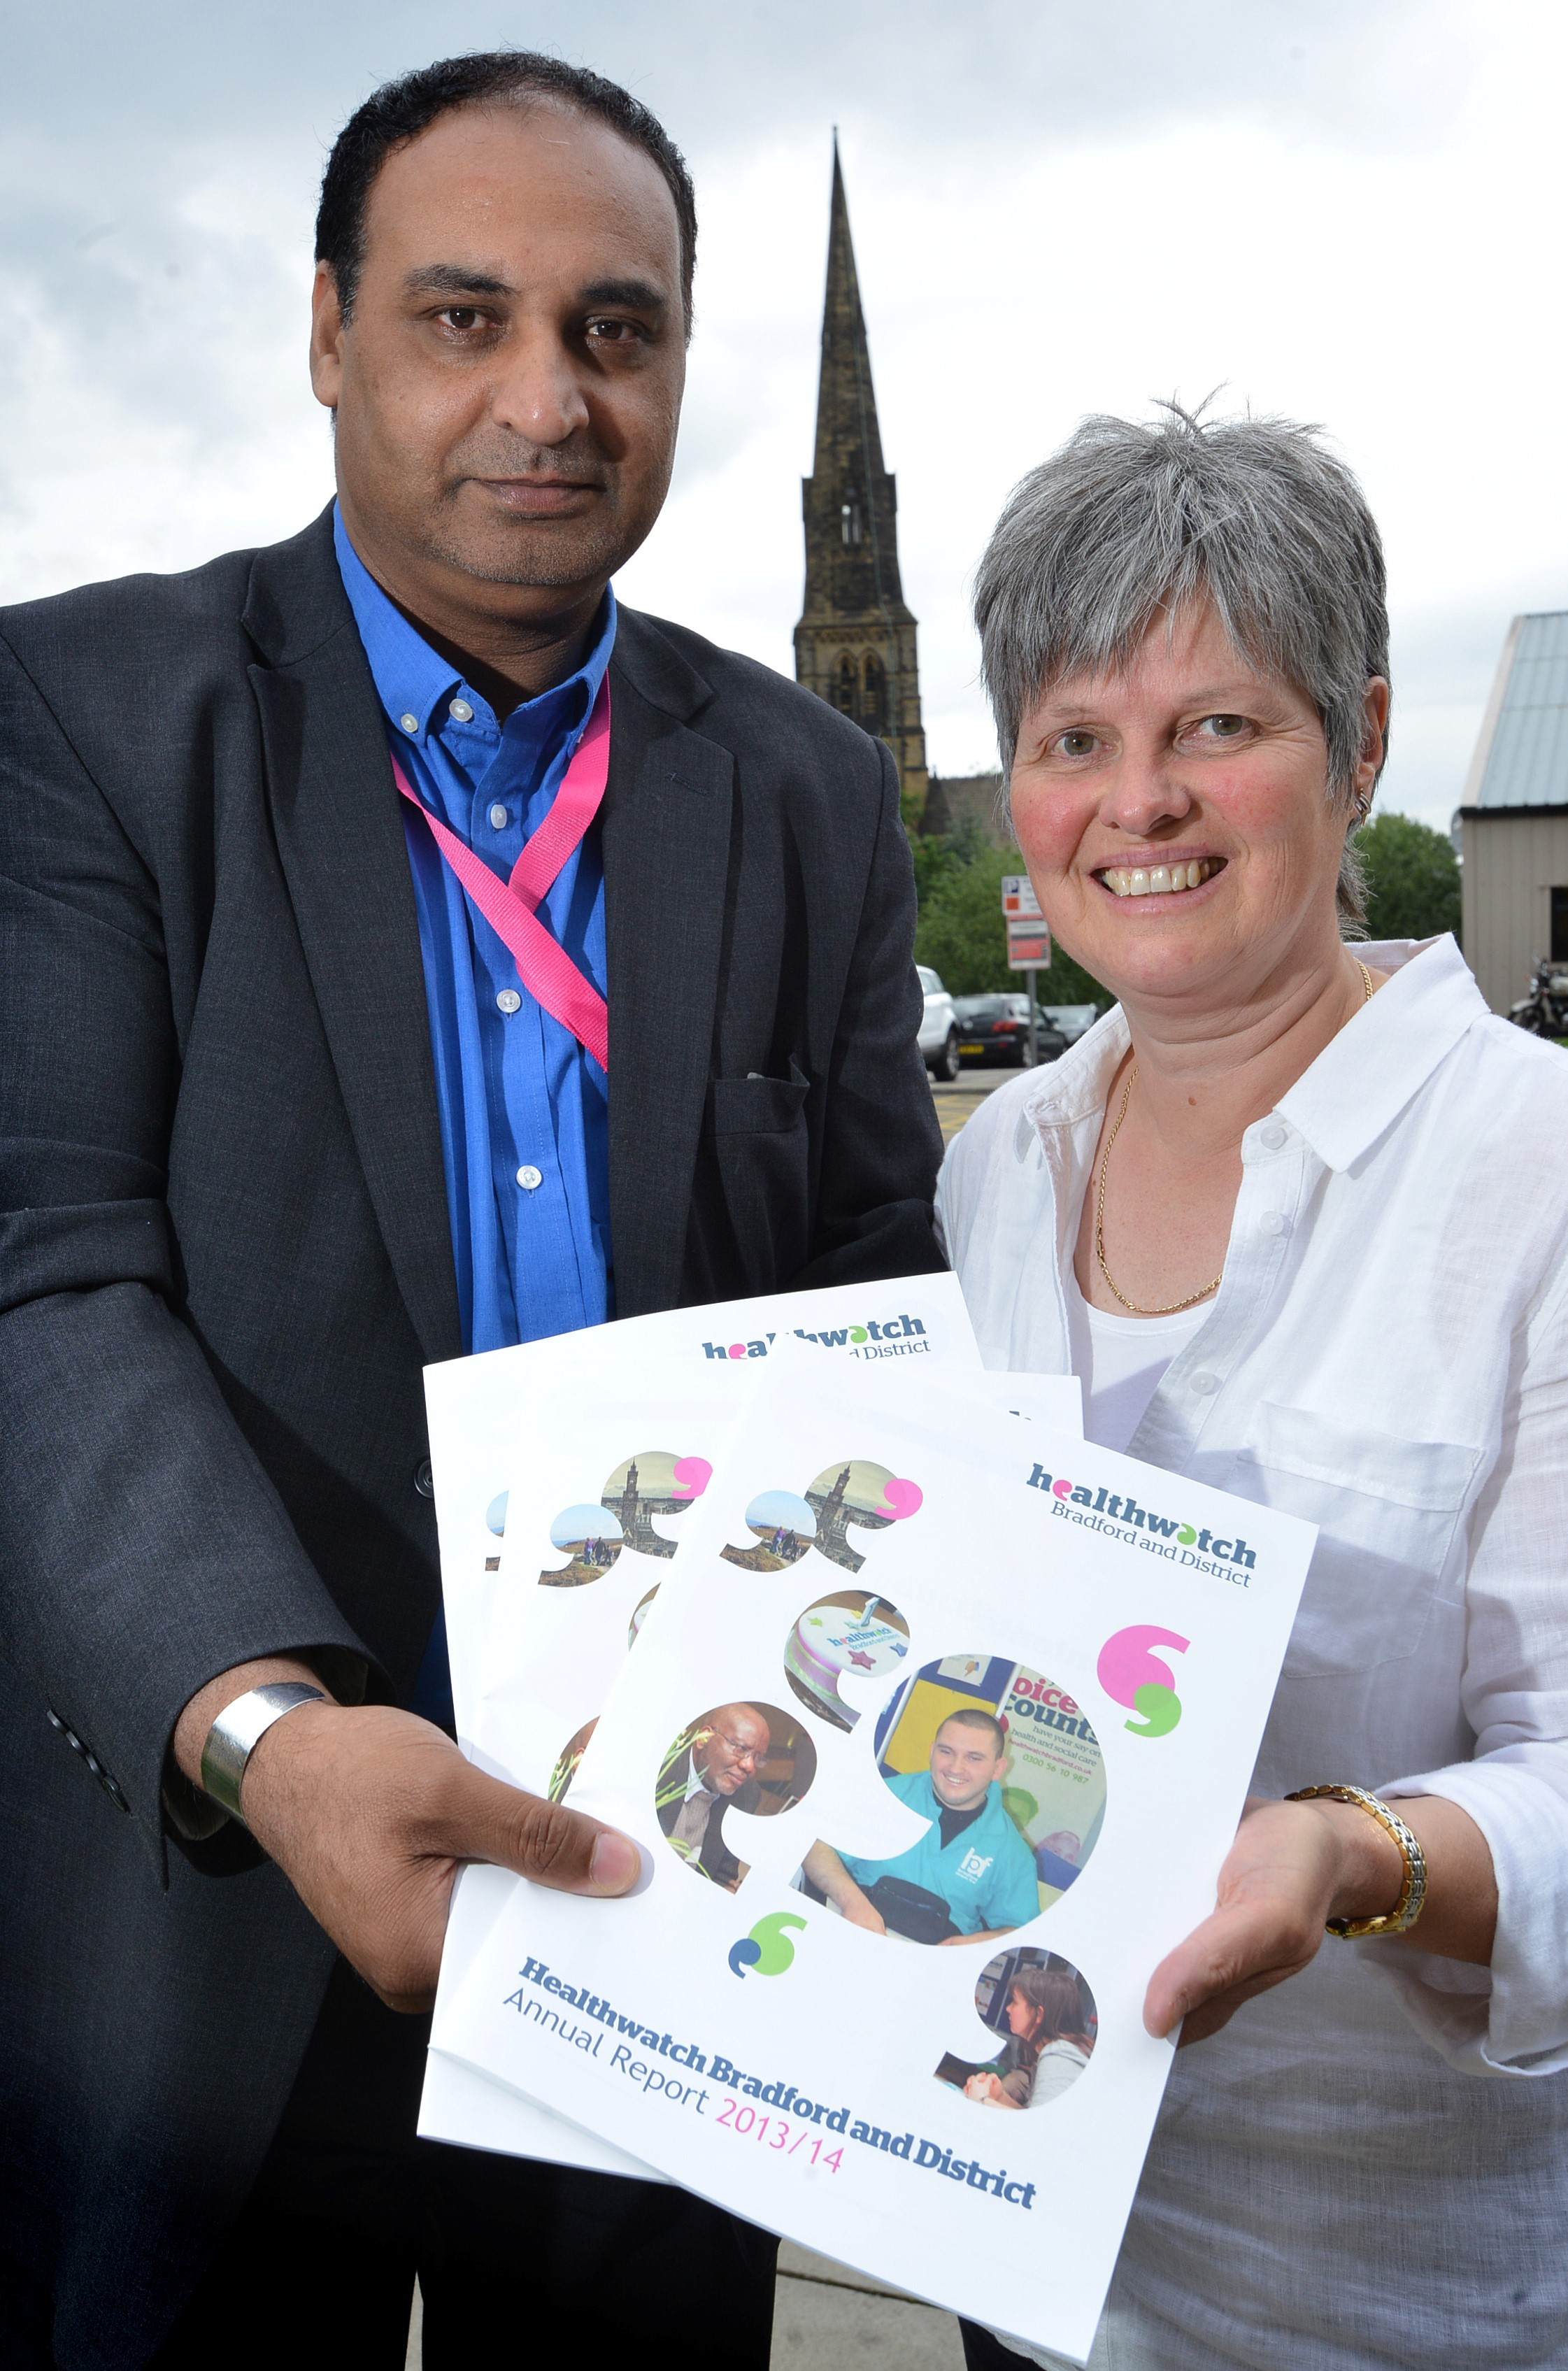 Bradford's health watchdog presents its first annual report